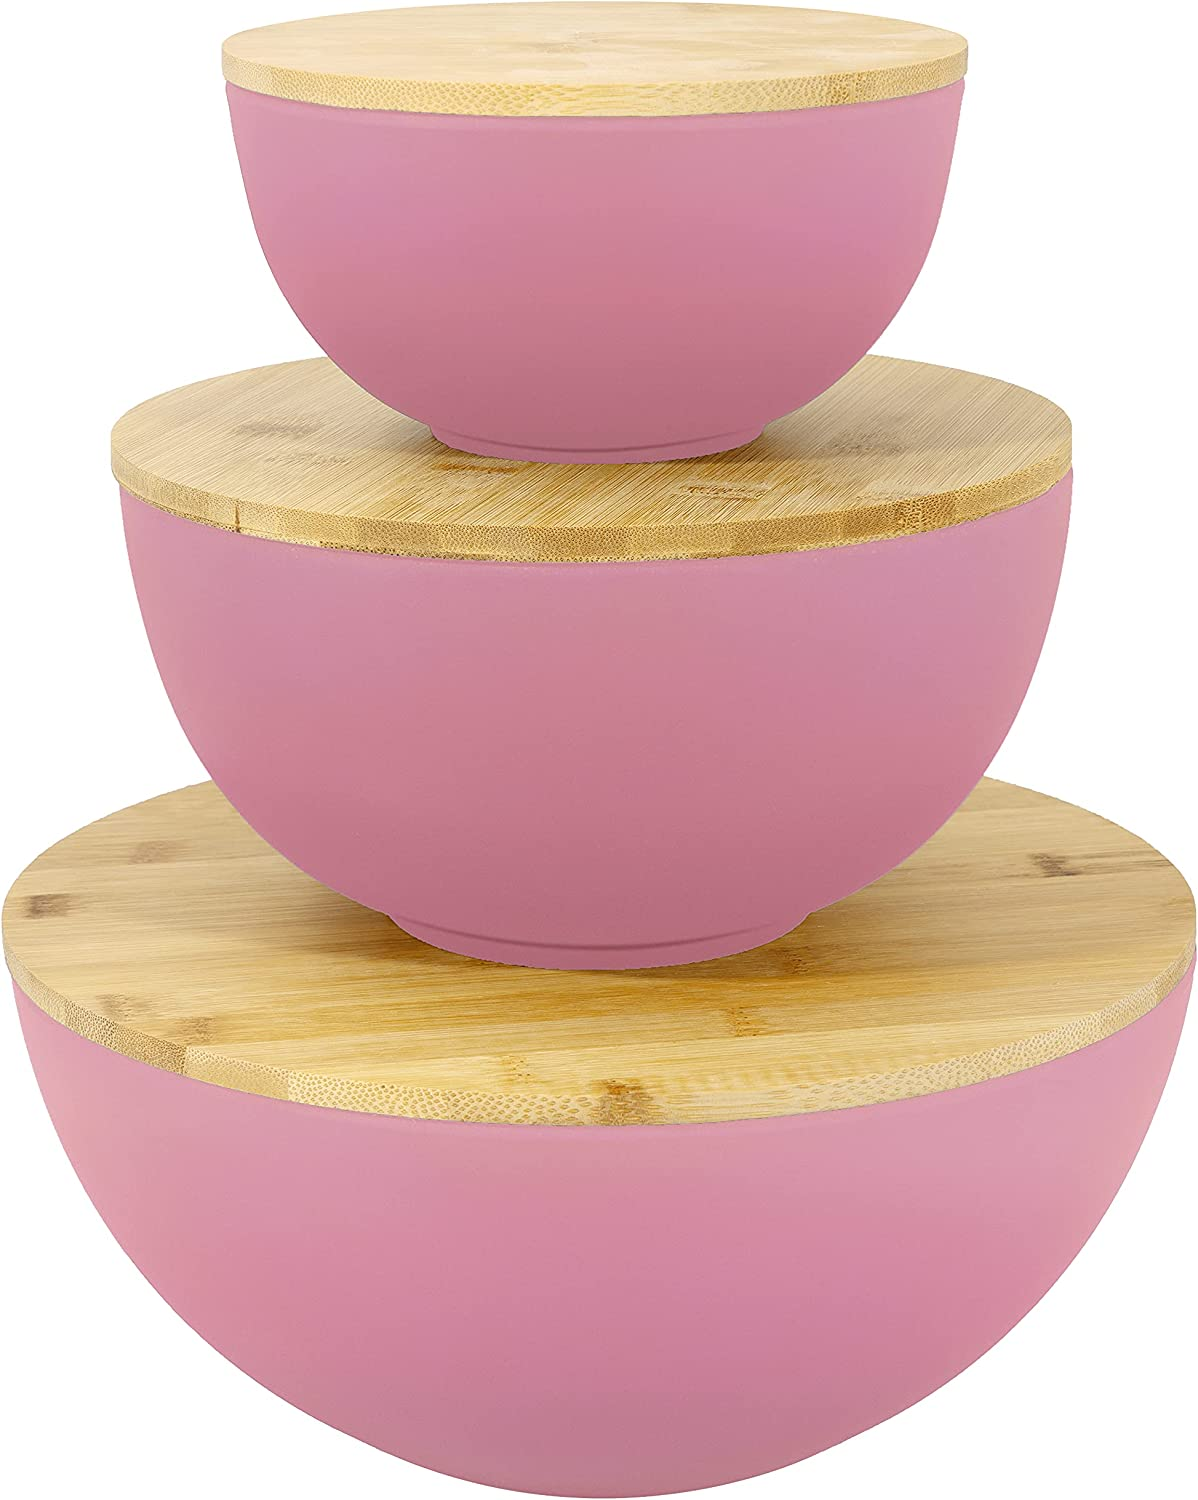 Large Salad Bowl Year-end annual account with Lid Indianapolis Mall - Set 3 Bowls Wooden of